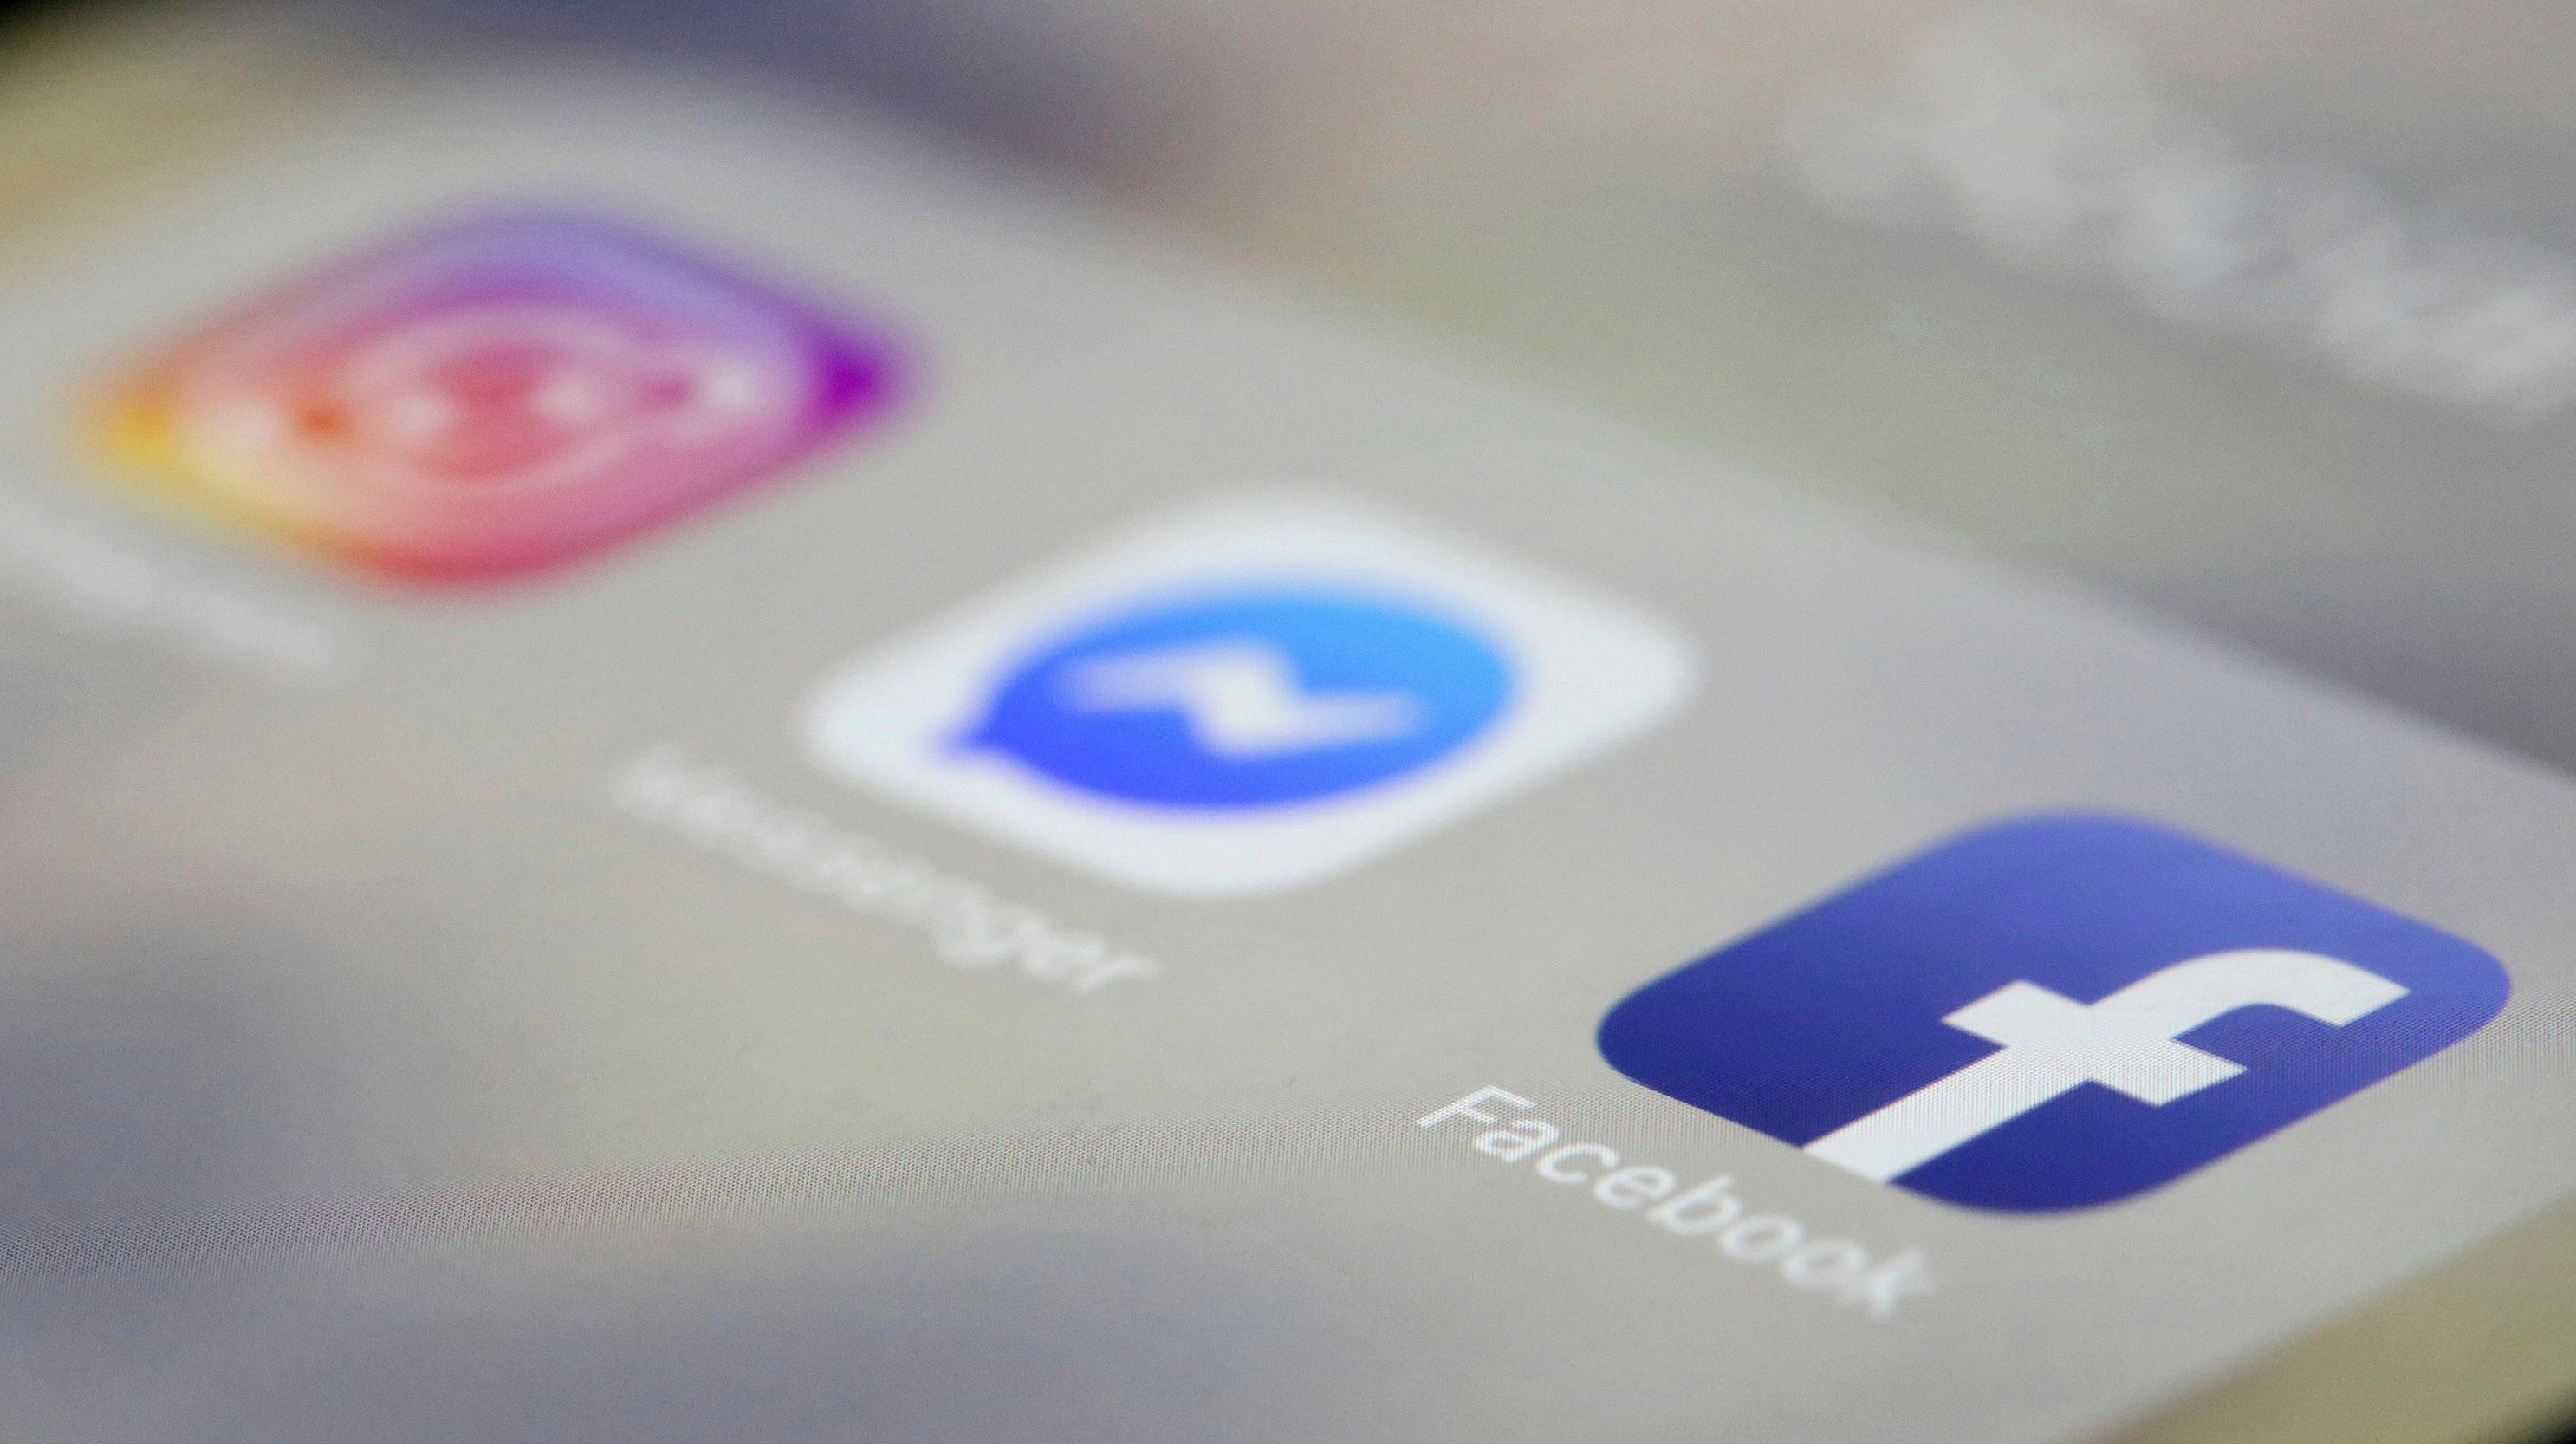 Facebook Asked Some Users For Their Email Passwords, Then Downloaded 1.5 Million Contact Lists Without Consent